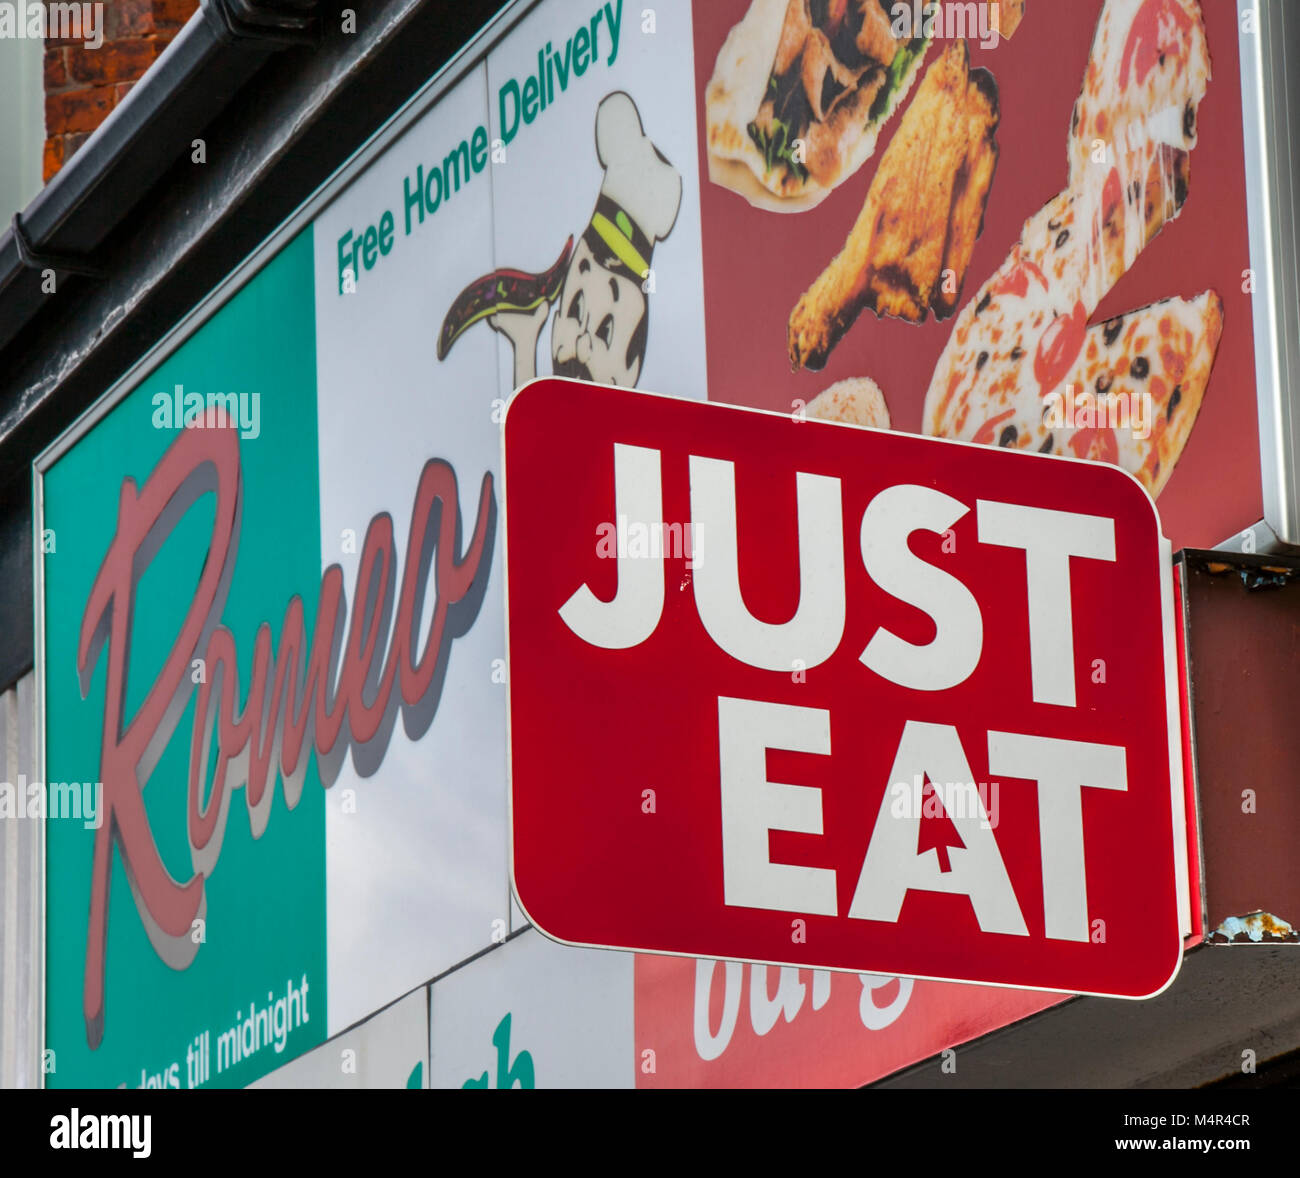 Just Eat advertising sign on front of pizza restaurant, Southport, UK - Stock Image